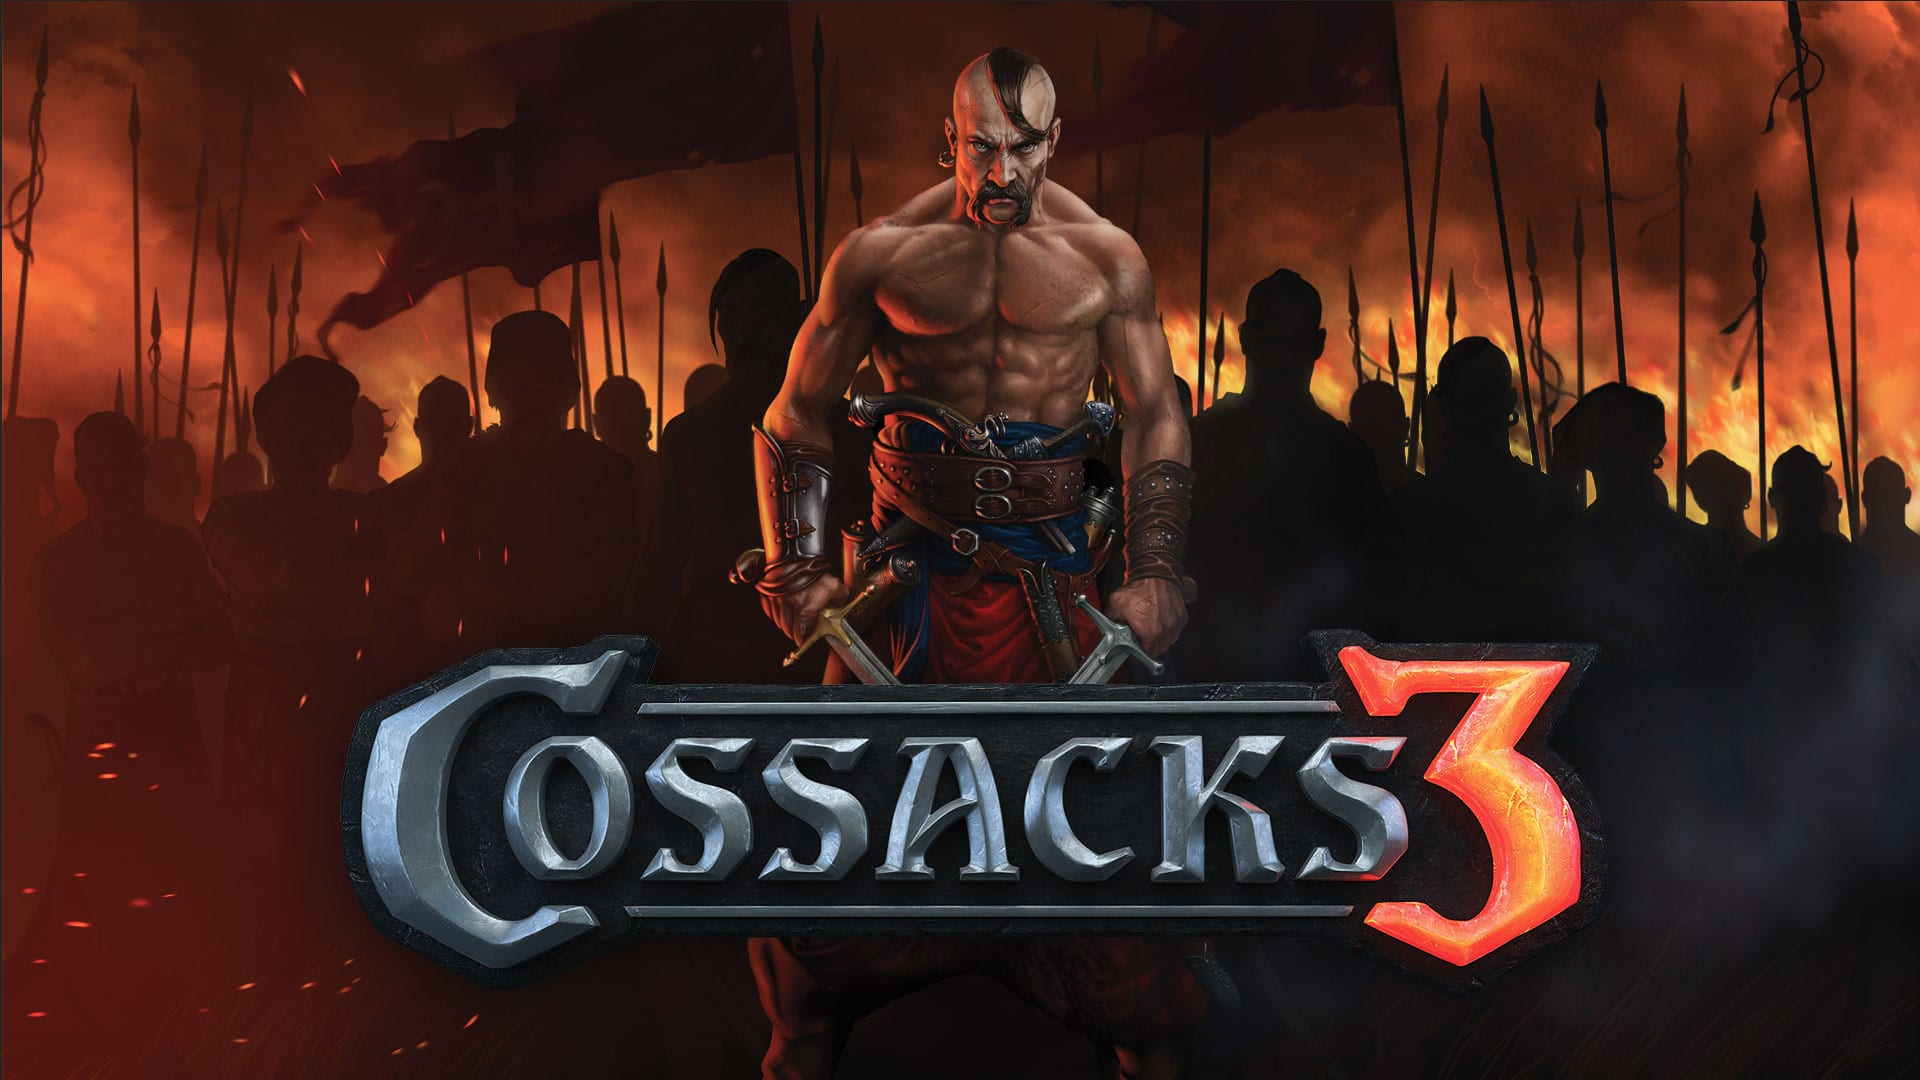 Cossacks3_1